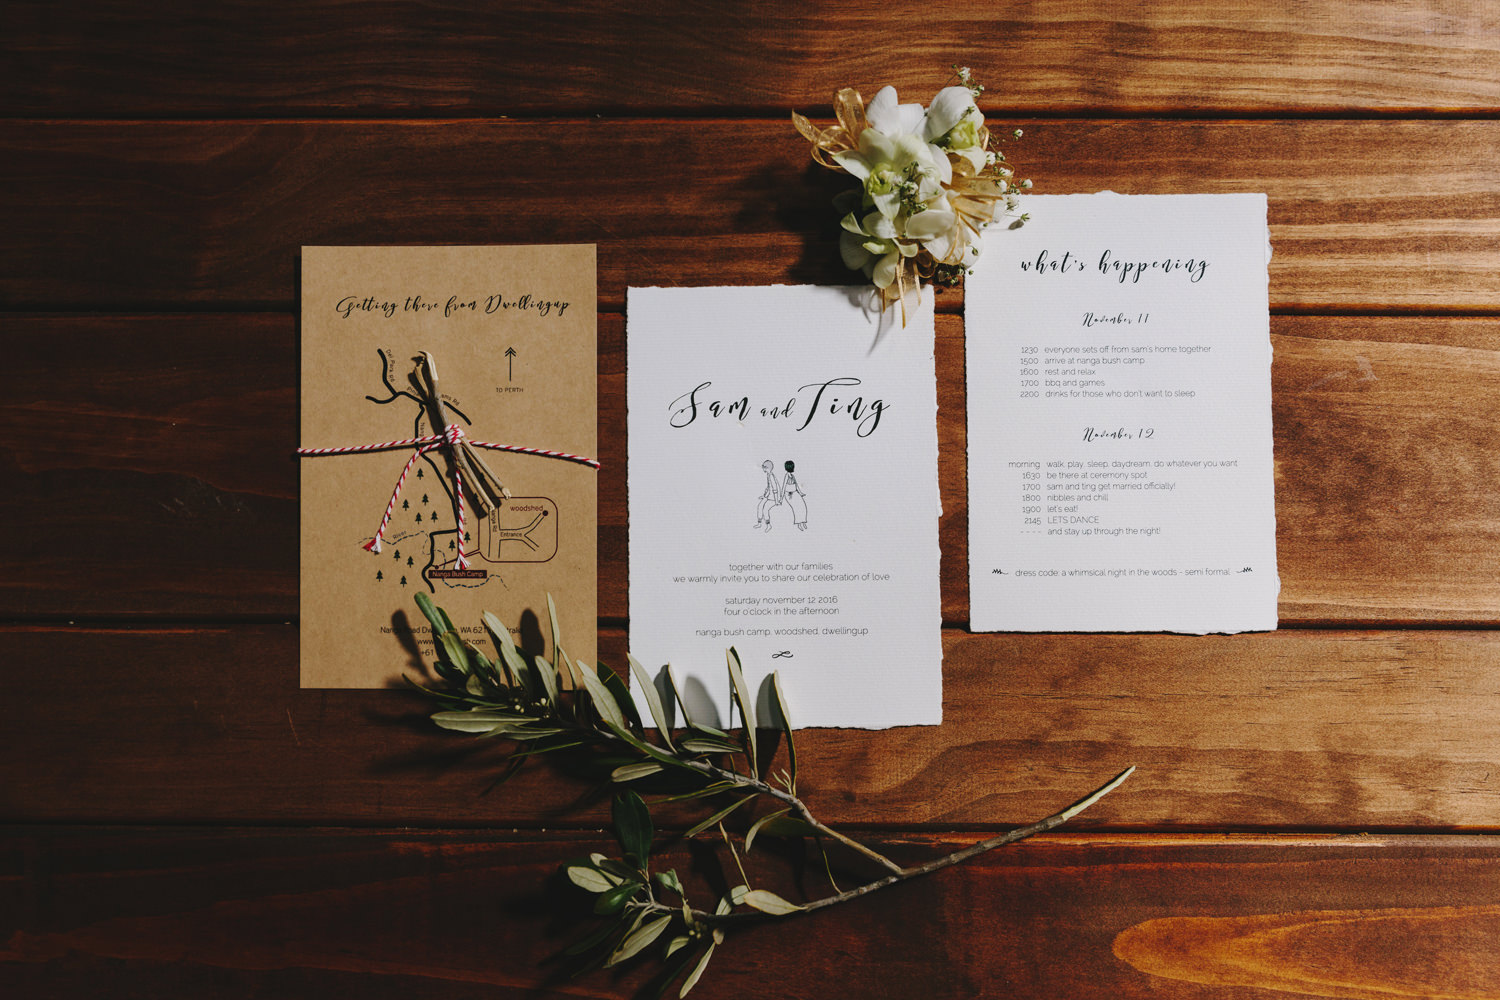 001-Barn_Wedding_Australia_Sam_Ting.jpg